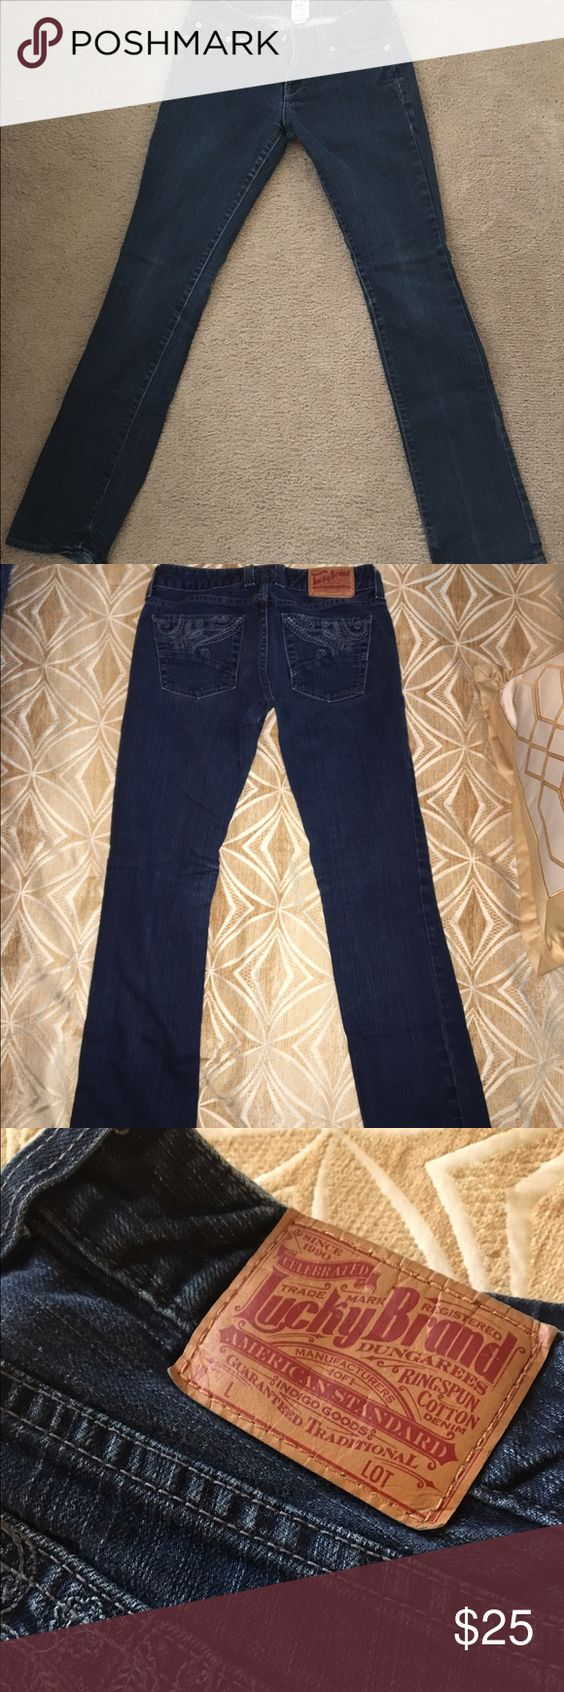 Lucky brand jeans size 26 Barely used lucky brand jeans! Since 2/26. A little flare on the bottom but a wonderful fit overall Lucky Brand Jeans Straight Leg